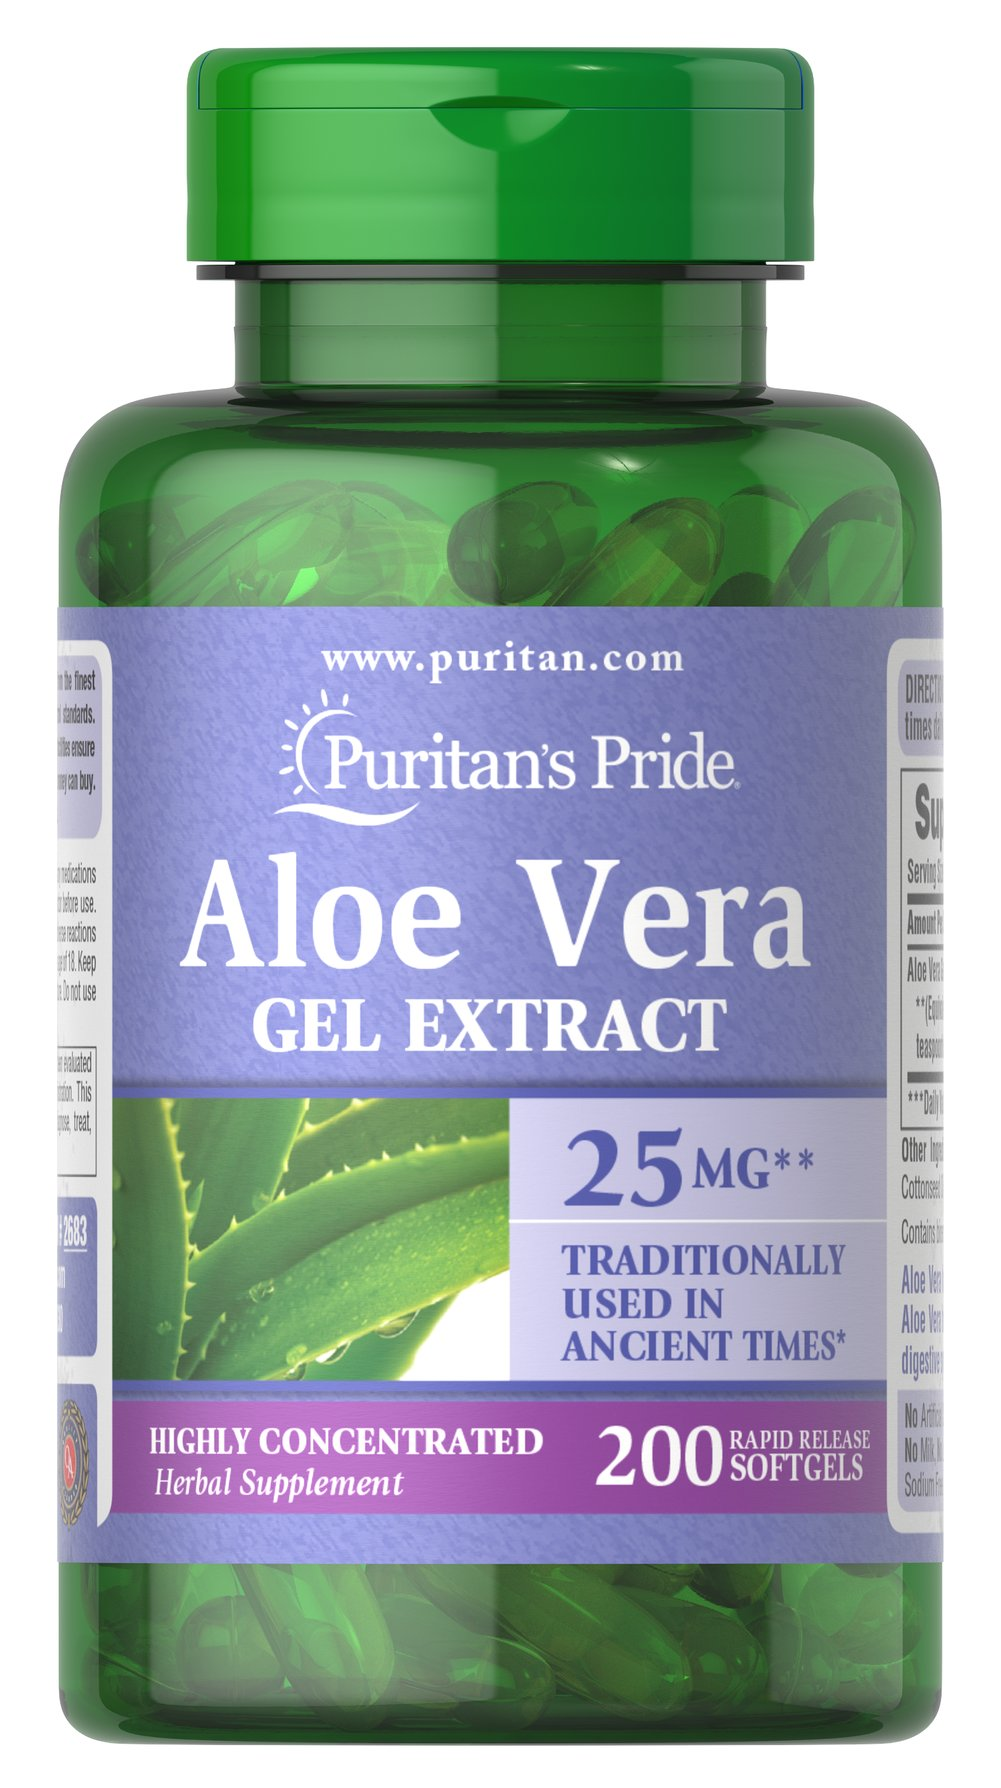 Aloe Vera Extract 25 mg <p>Serves as an aid for healthy digestion**</p><p>Plays a role in the well-being of the body**</p><p>Convenience of capsules, softgels and liquids is unsurpassed</p><p>Has been used and trusted for centuries. **</p><p>Aloe Vera contains a vast array of vitamins, minerals, amino acids, polysaccharides and phenolic compounds, and has been shown to support a healthy digestive system.**</p> 200 Softgels 25 mg $17.99